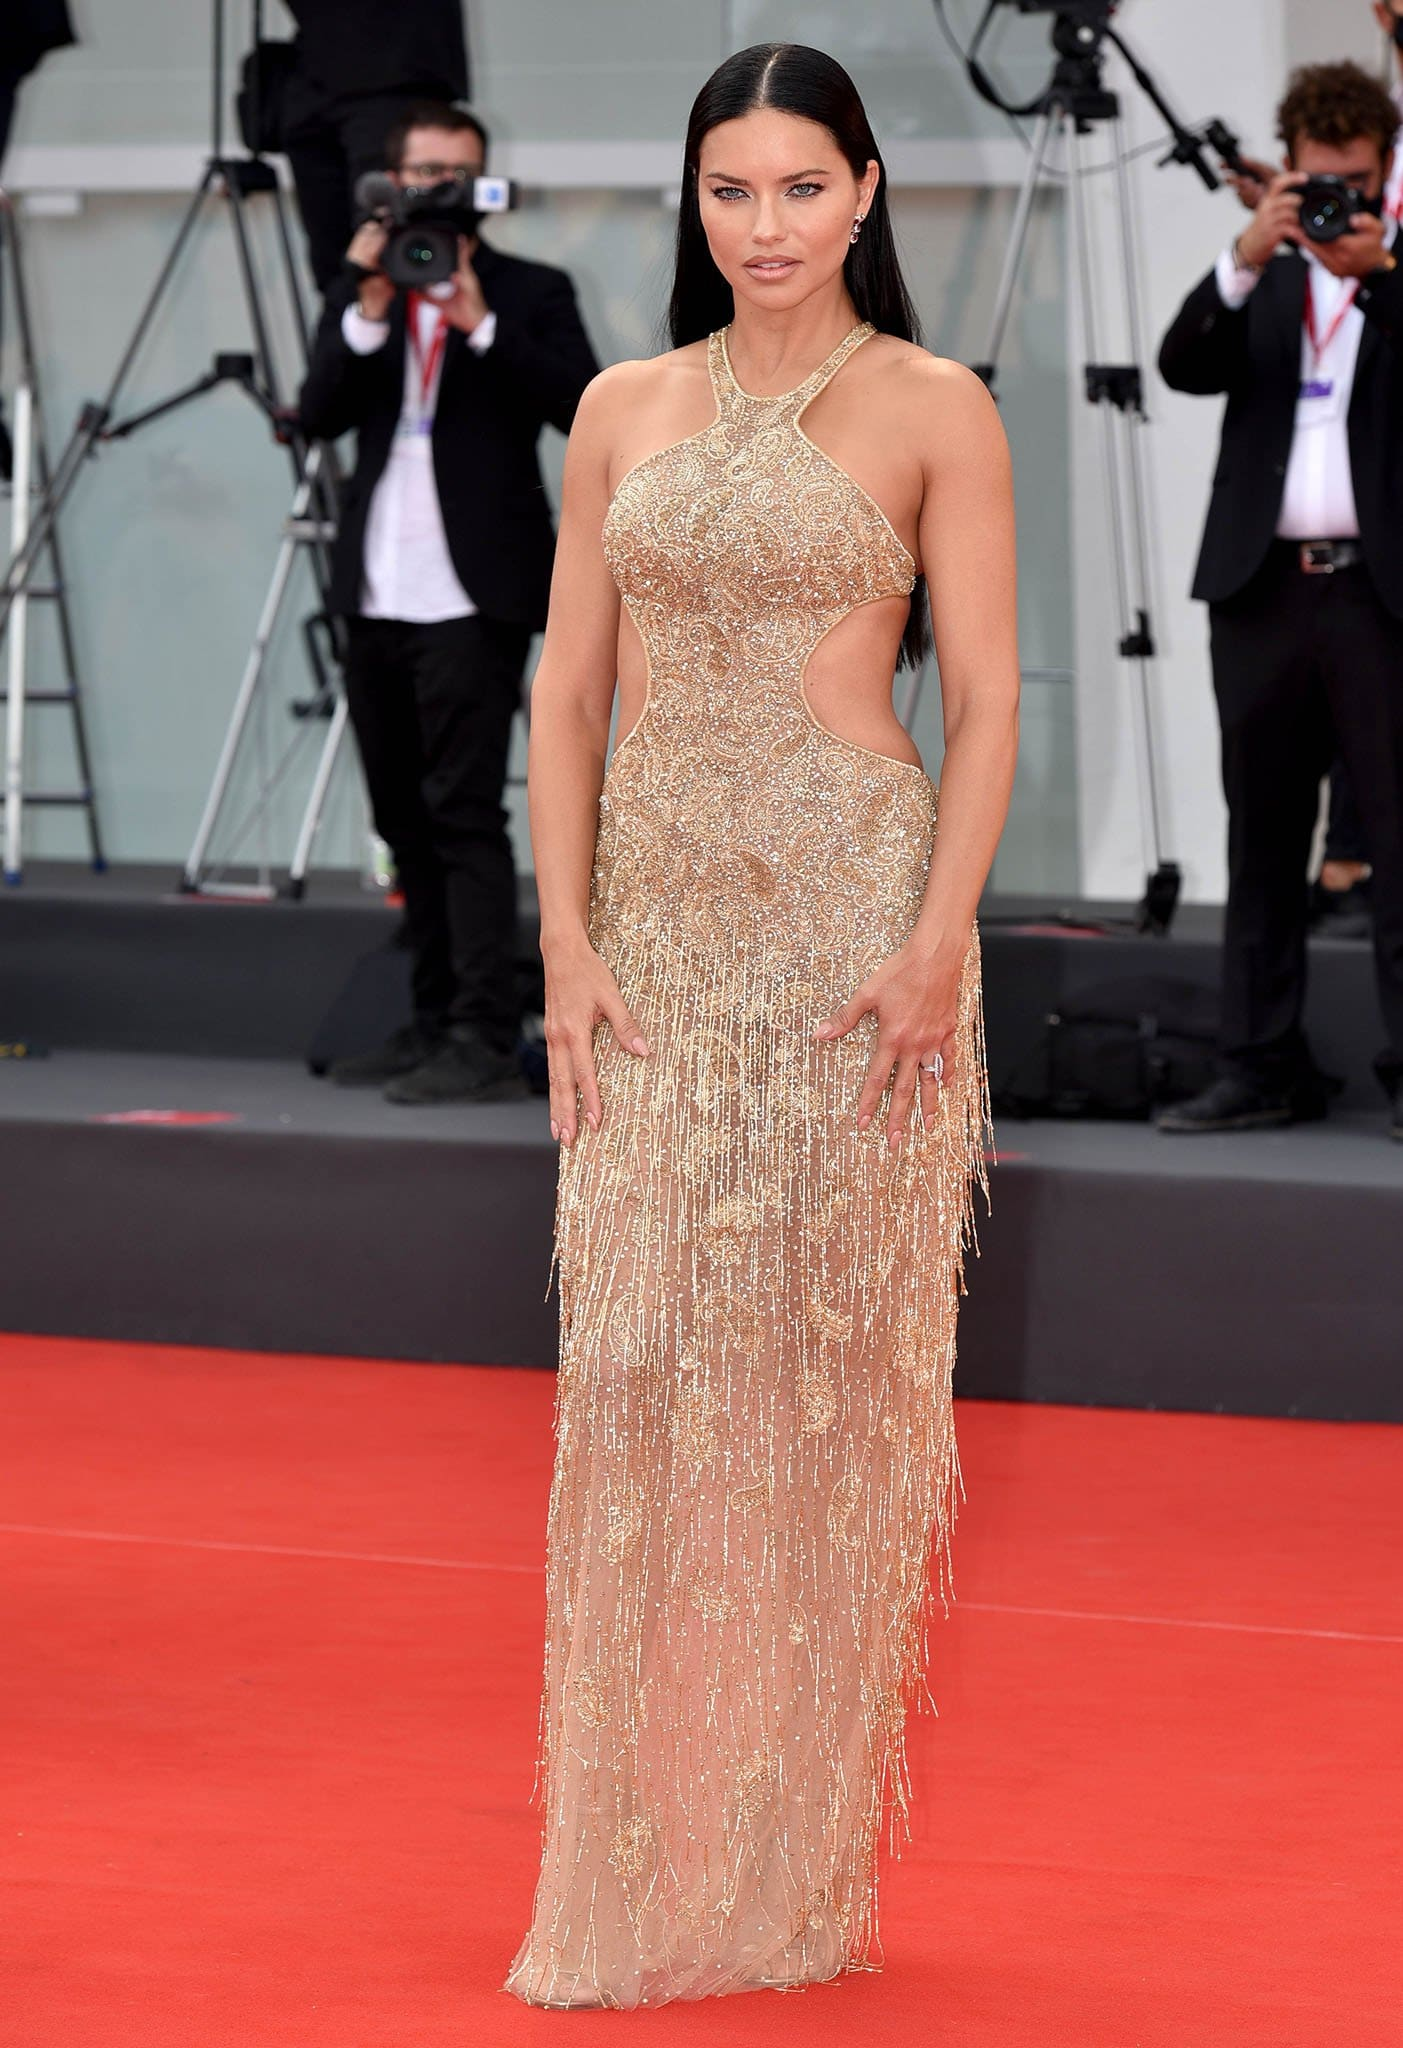 """Adriana Lima in a gold glass-embellished dress at the premiere of """"Dune"""""""